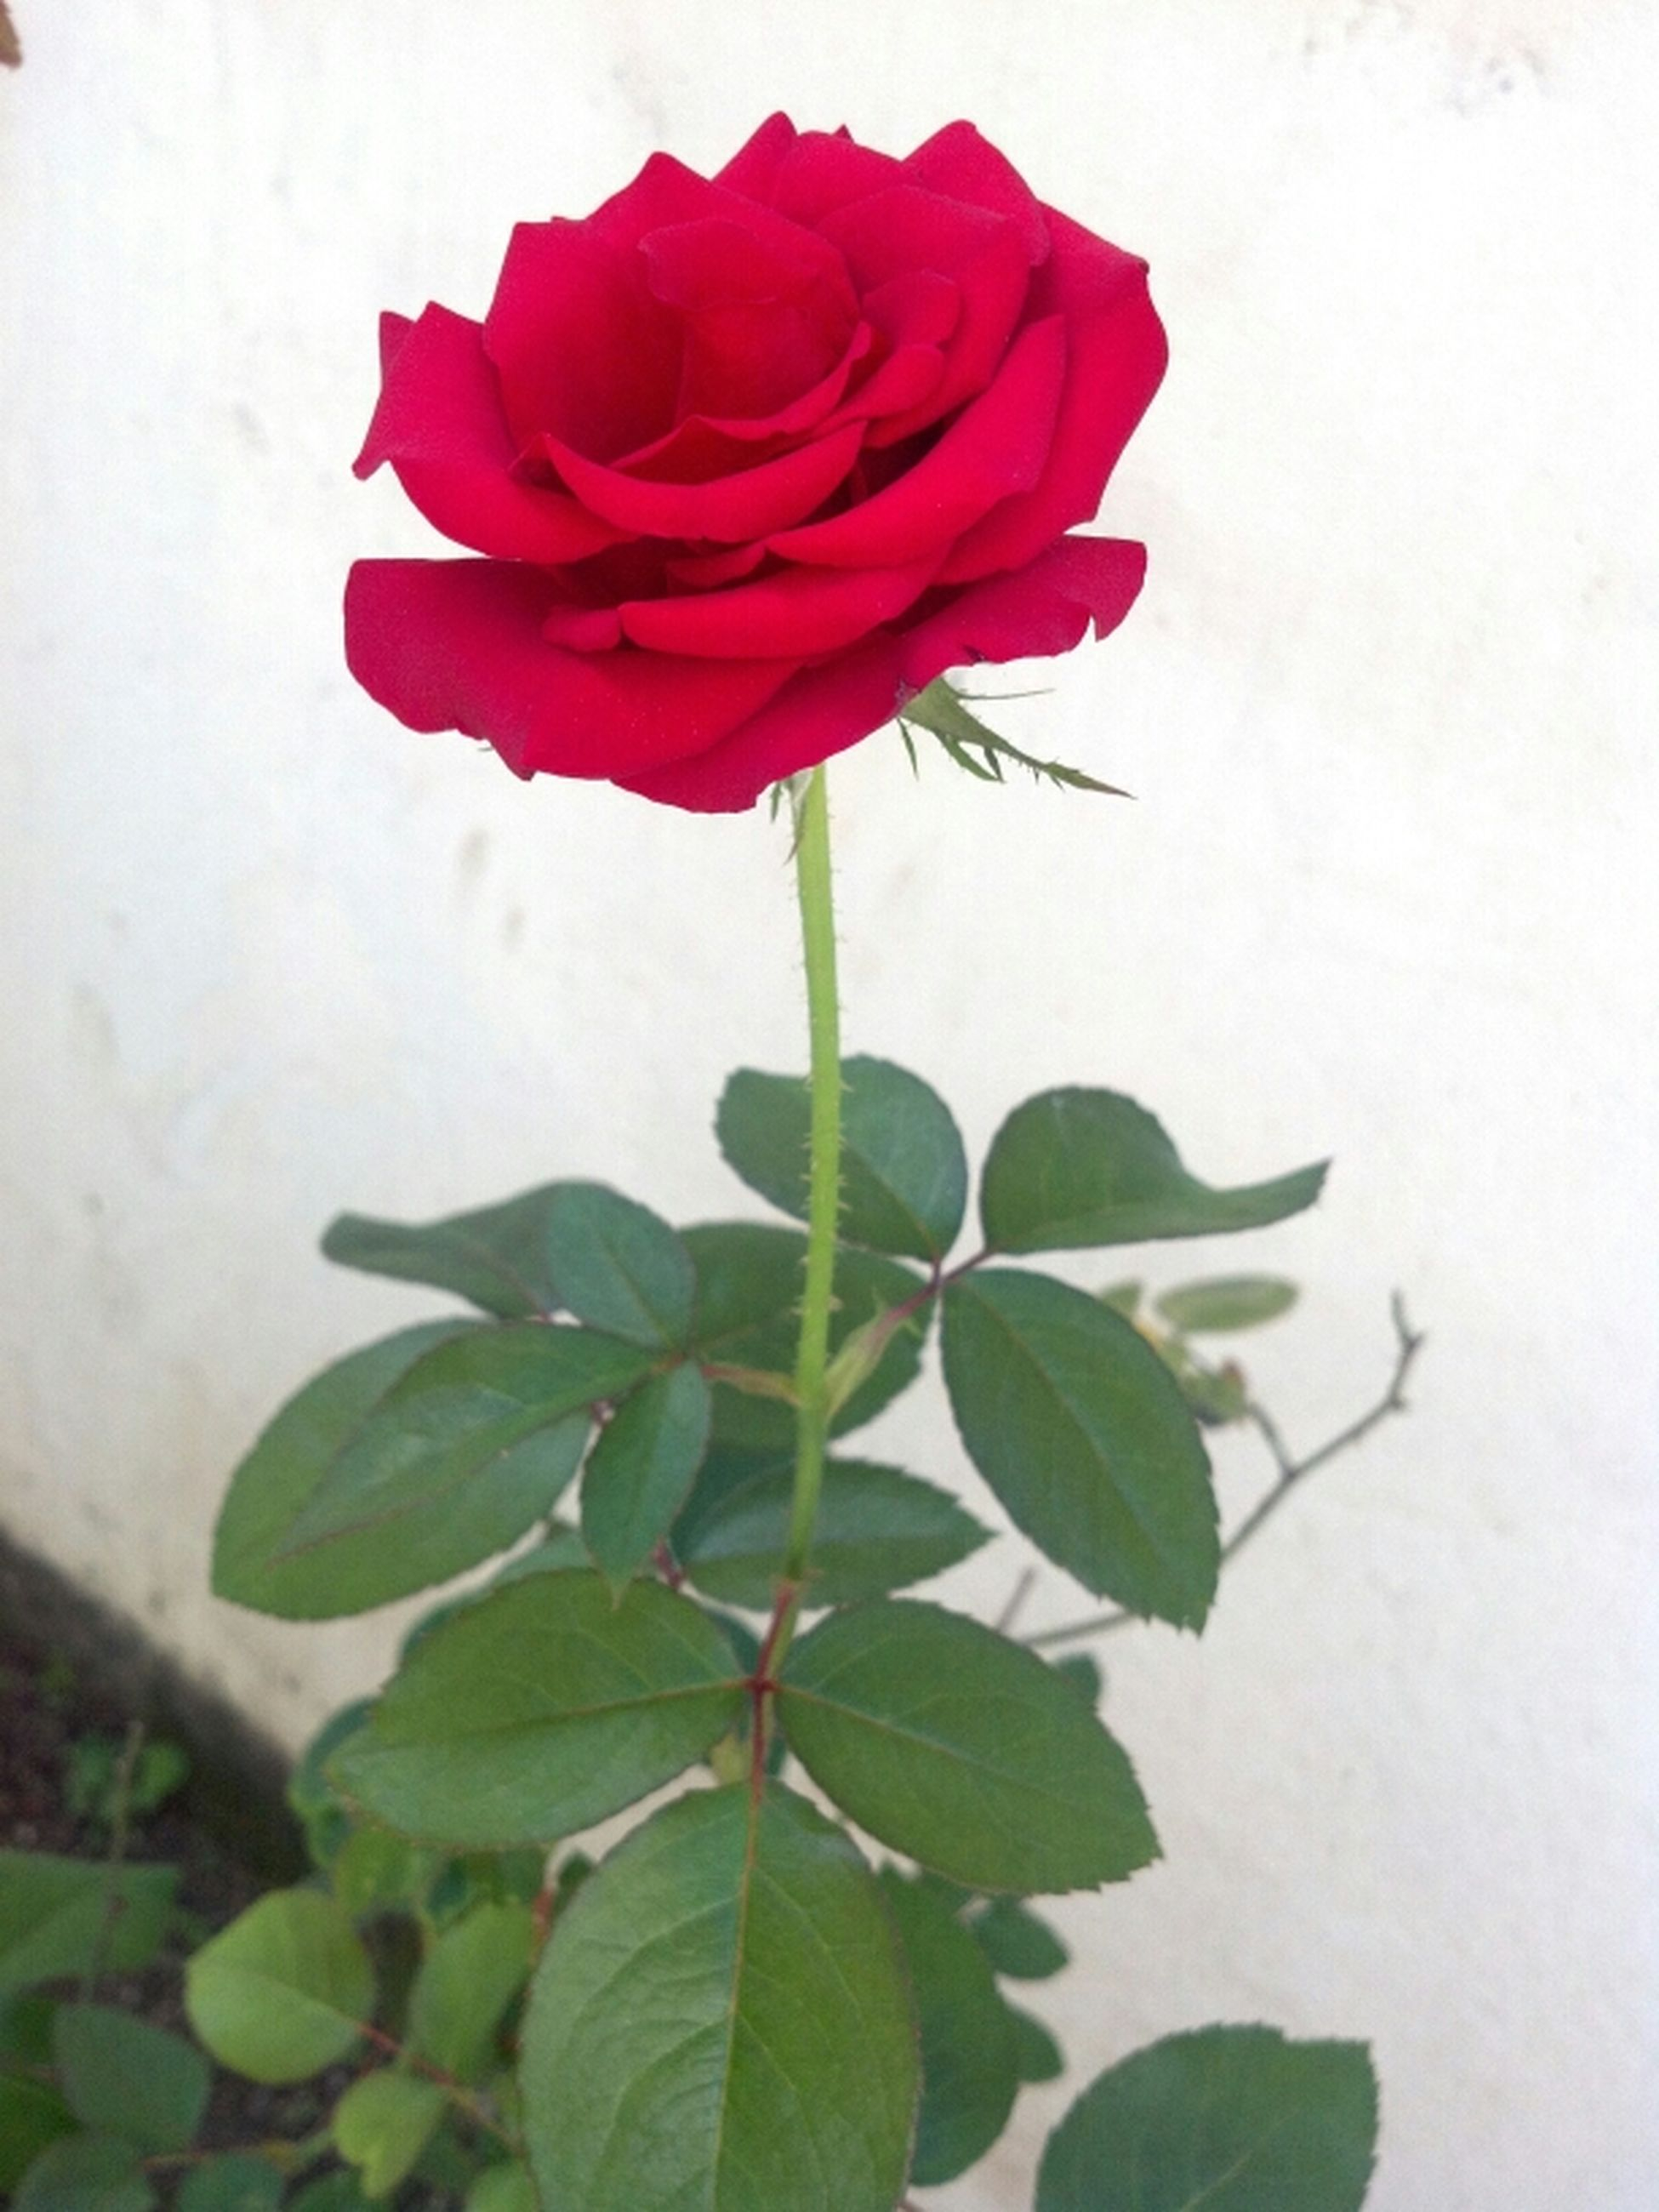 flower, petal, fragility, freshness, flower head, red, leaf, rose - flower, growth, beauty in nature, single flower, plant, nature, stem, close-up, rose, blooming, wall - building feature, in bloom, blossom